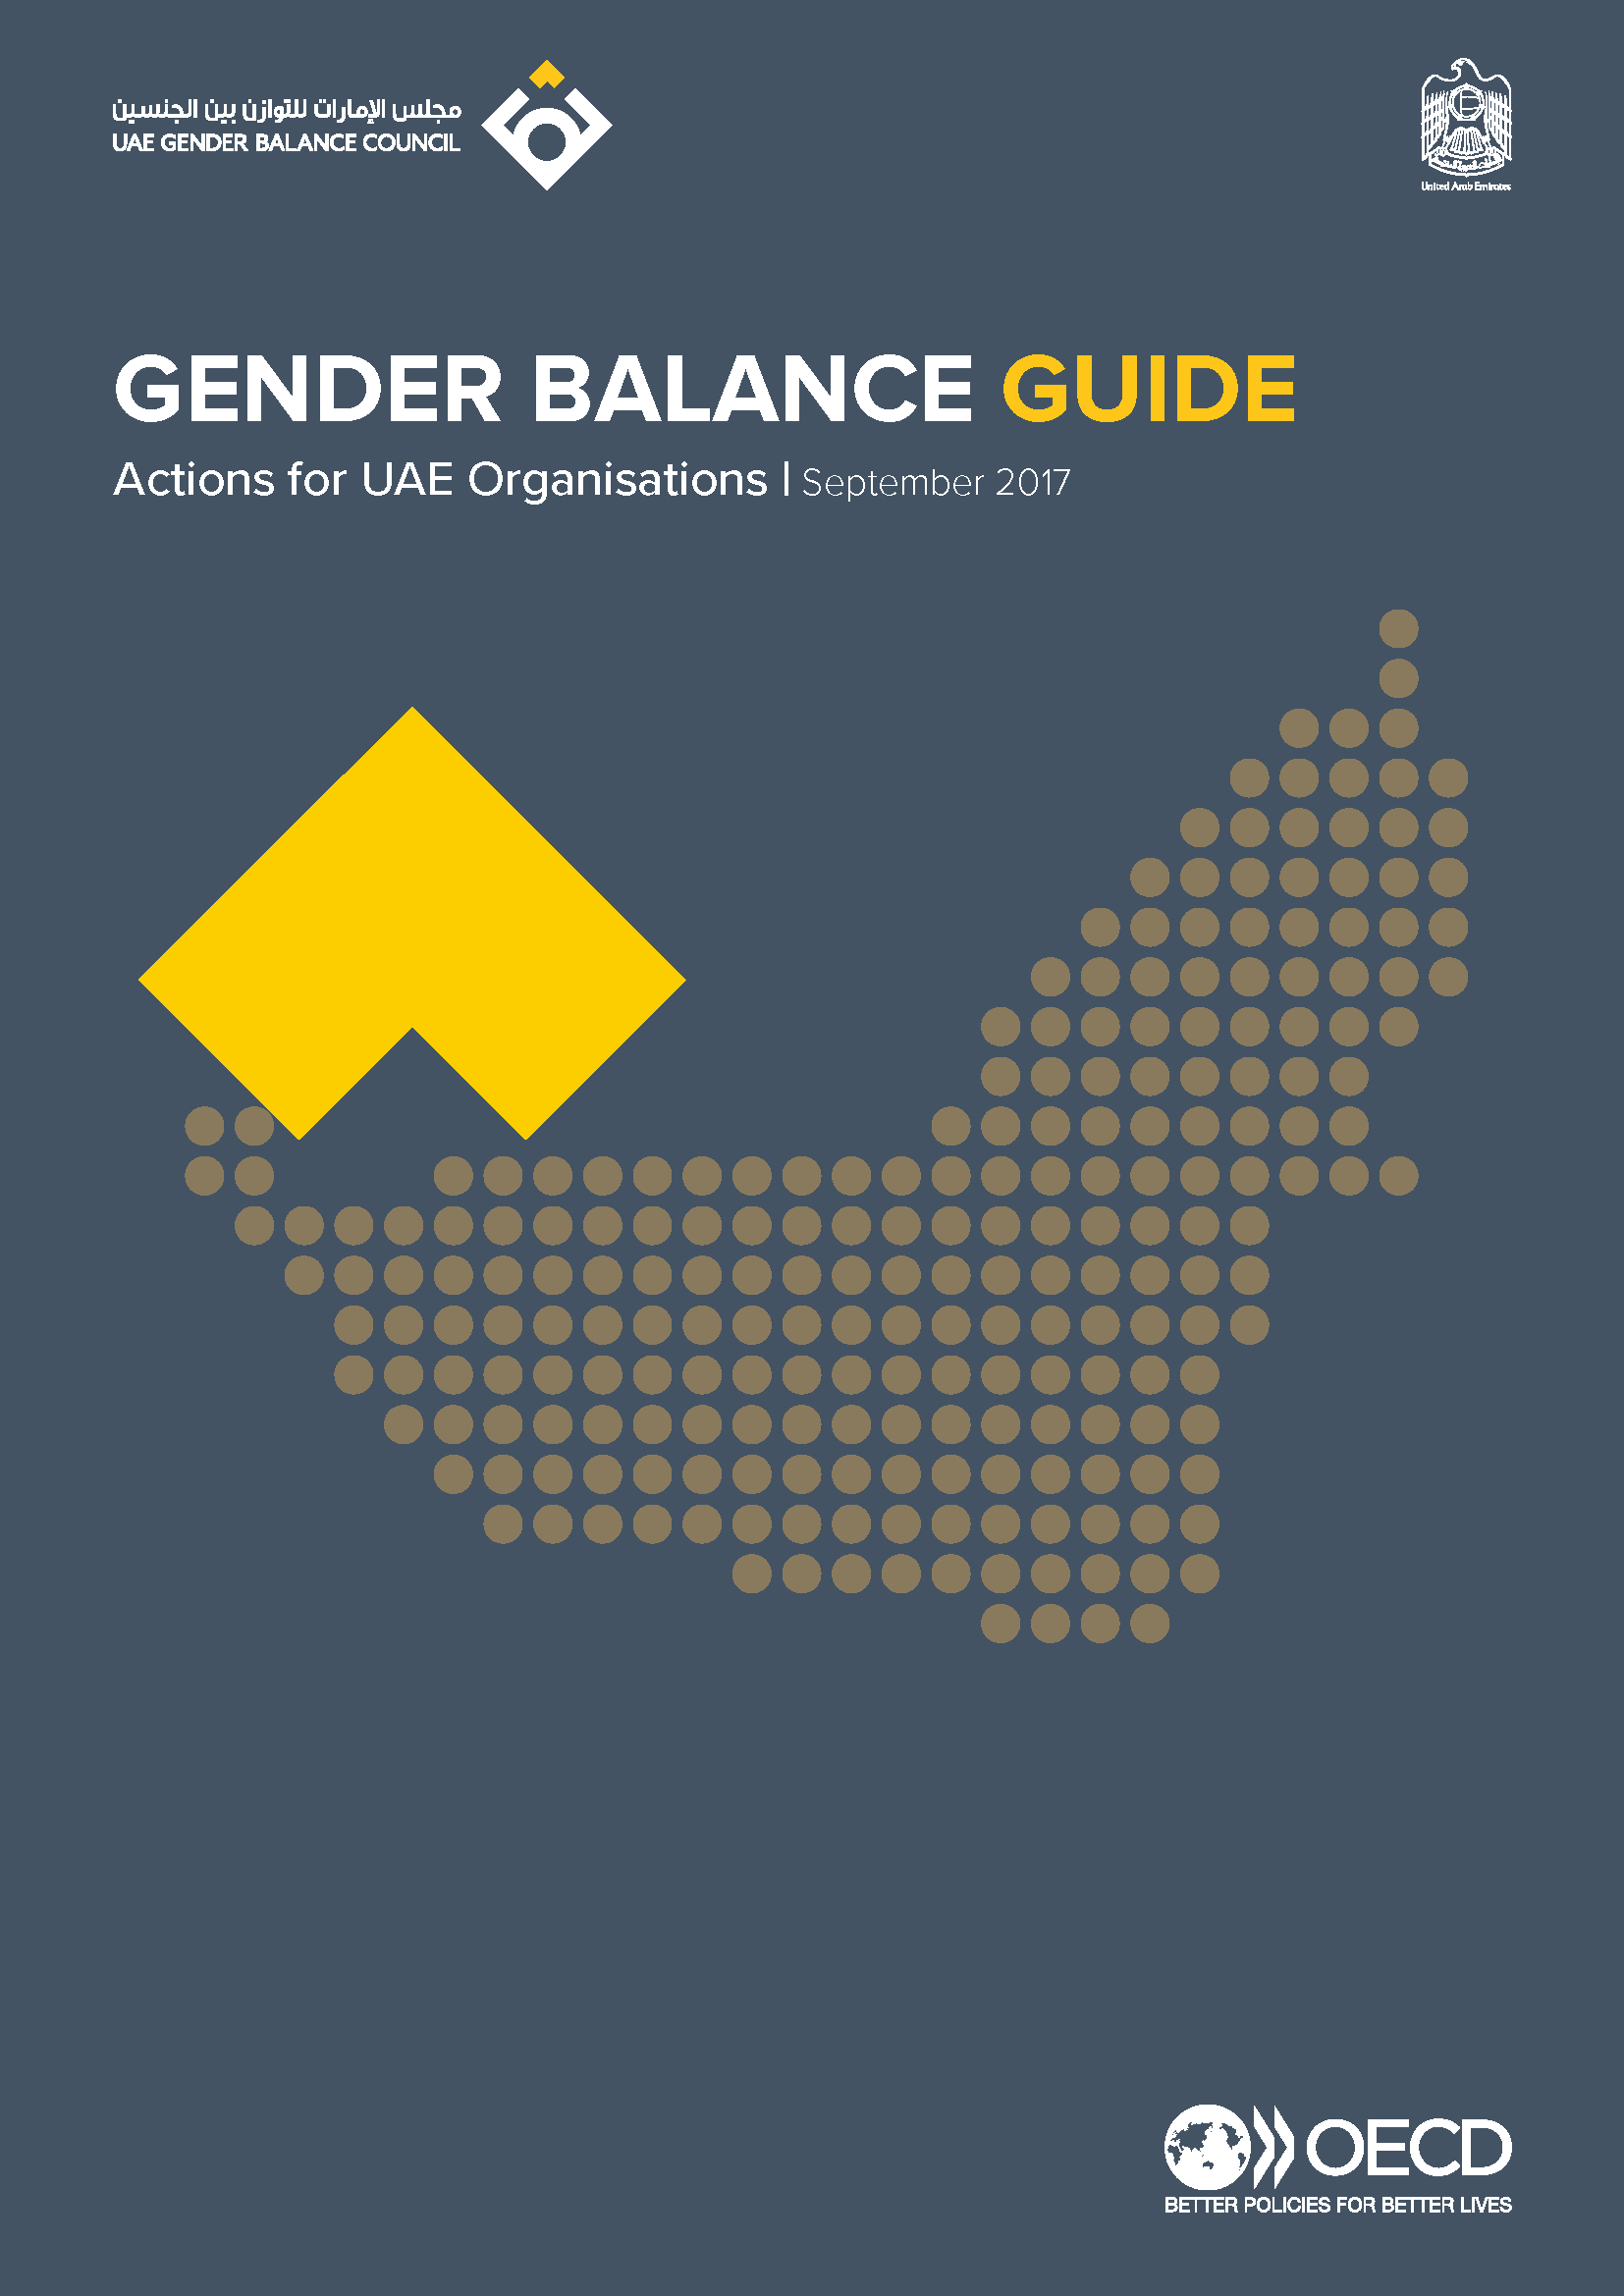 Gender Balance Guide - UAE 2017